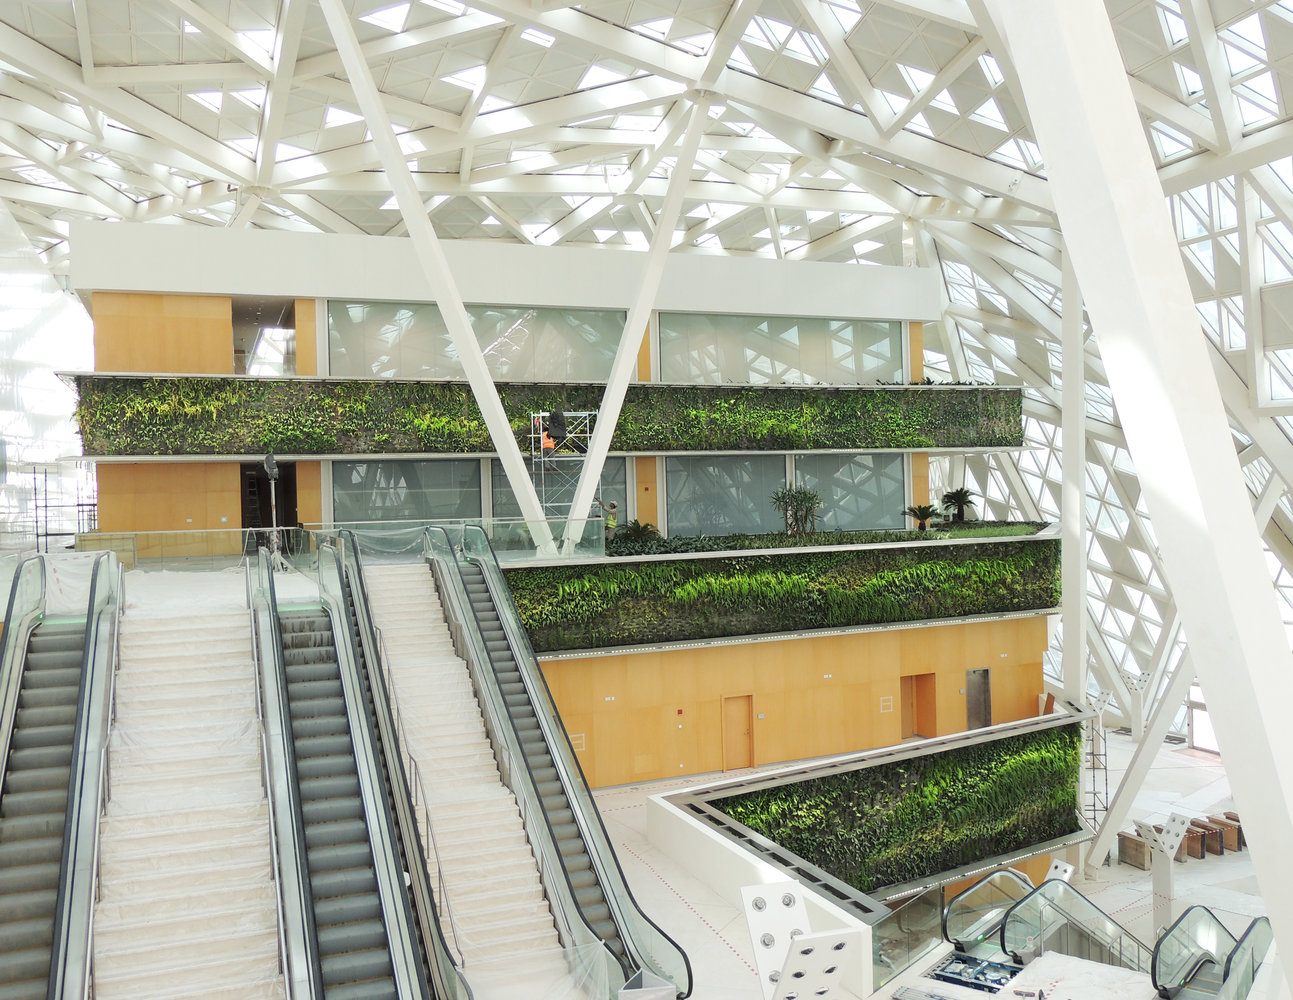 Indoor Vertical Gardens At The KAFD Conference Center, Riyadh